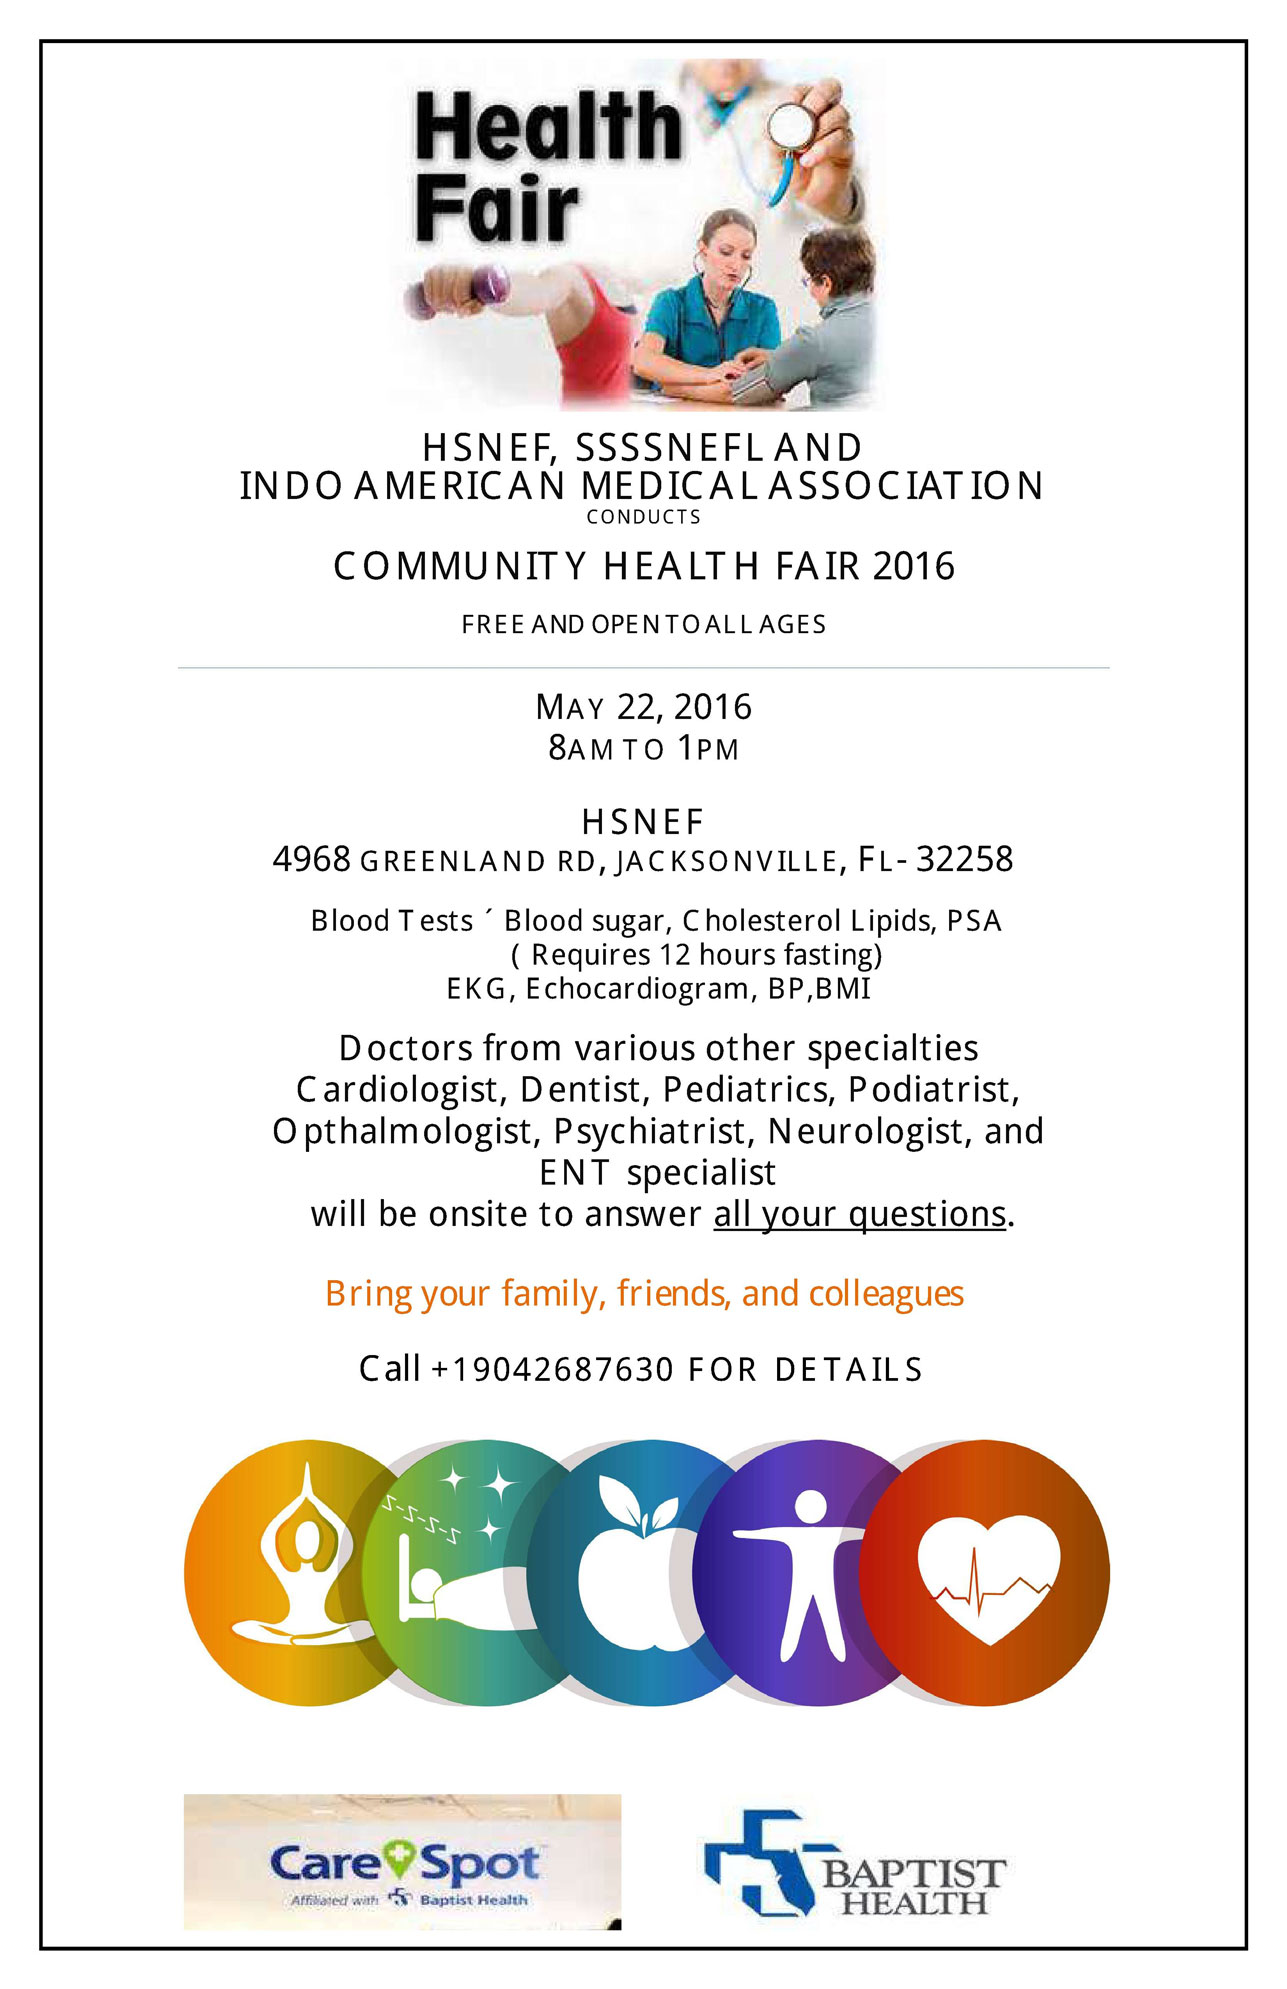 Health Fair 2016 Event Details